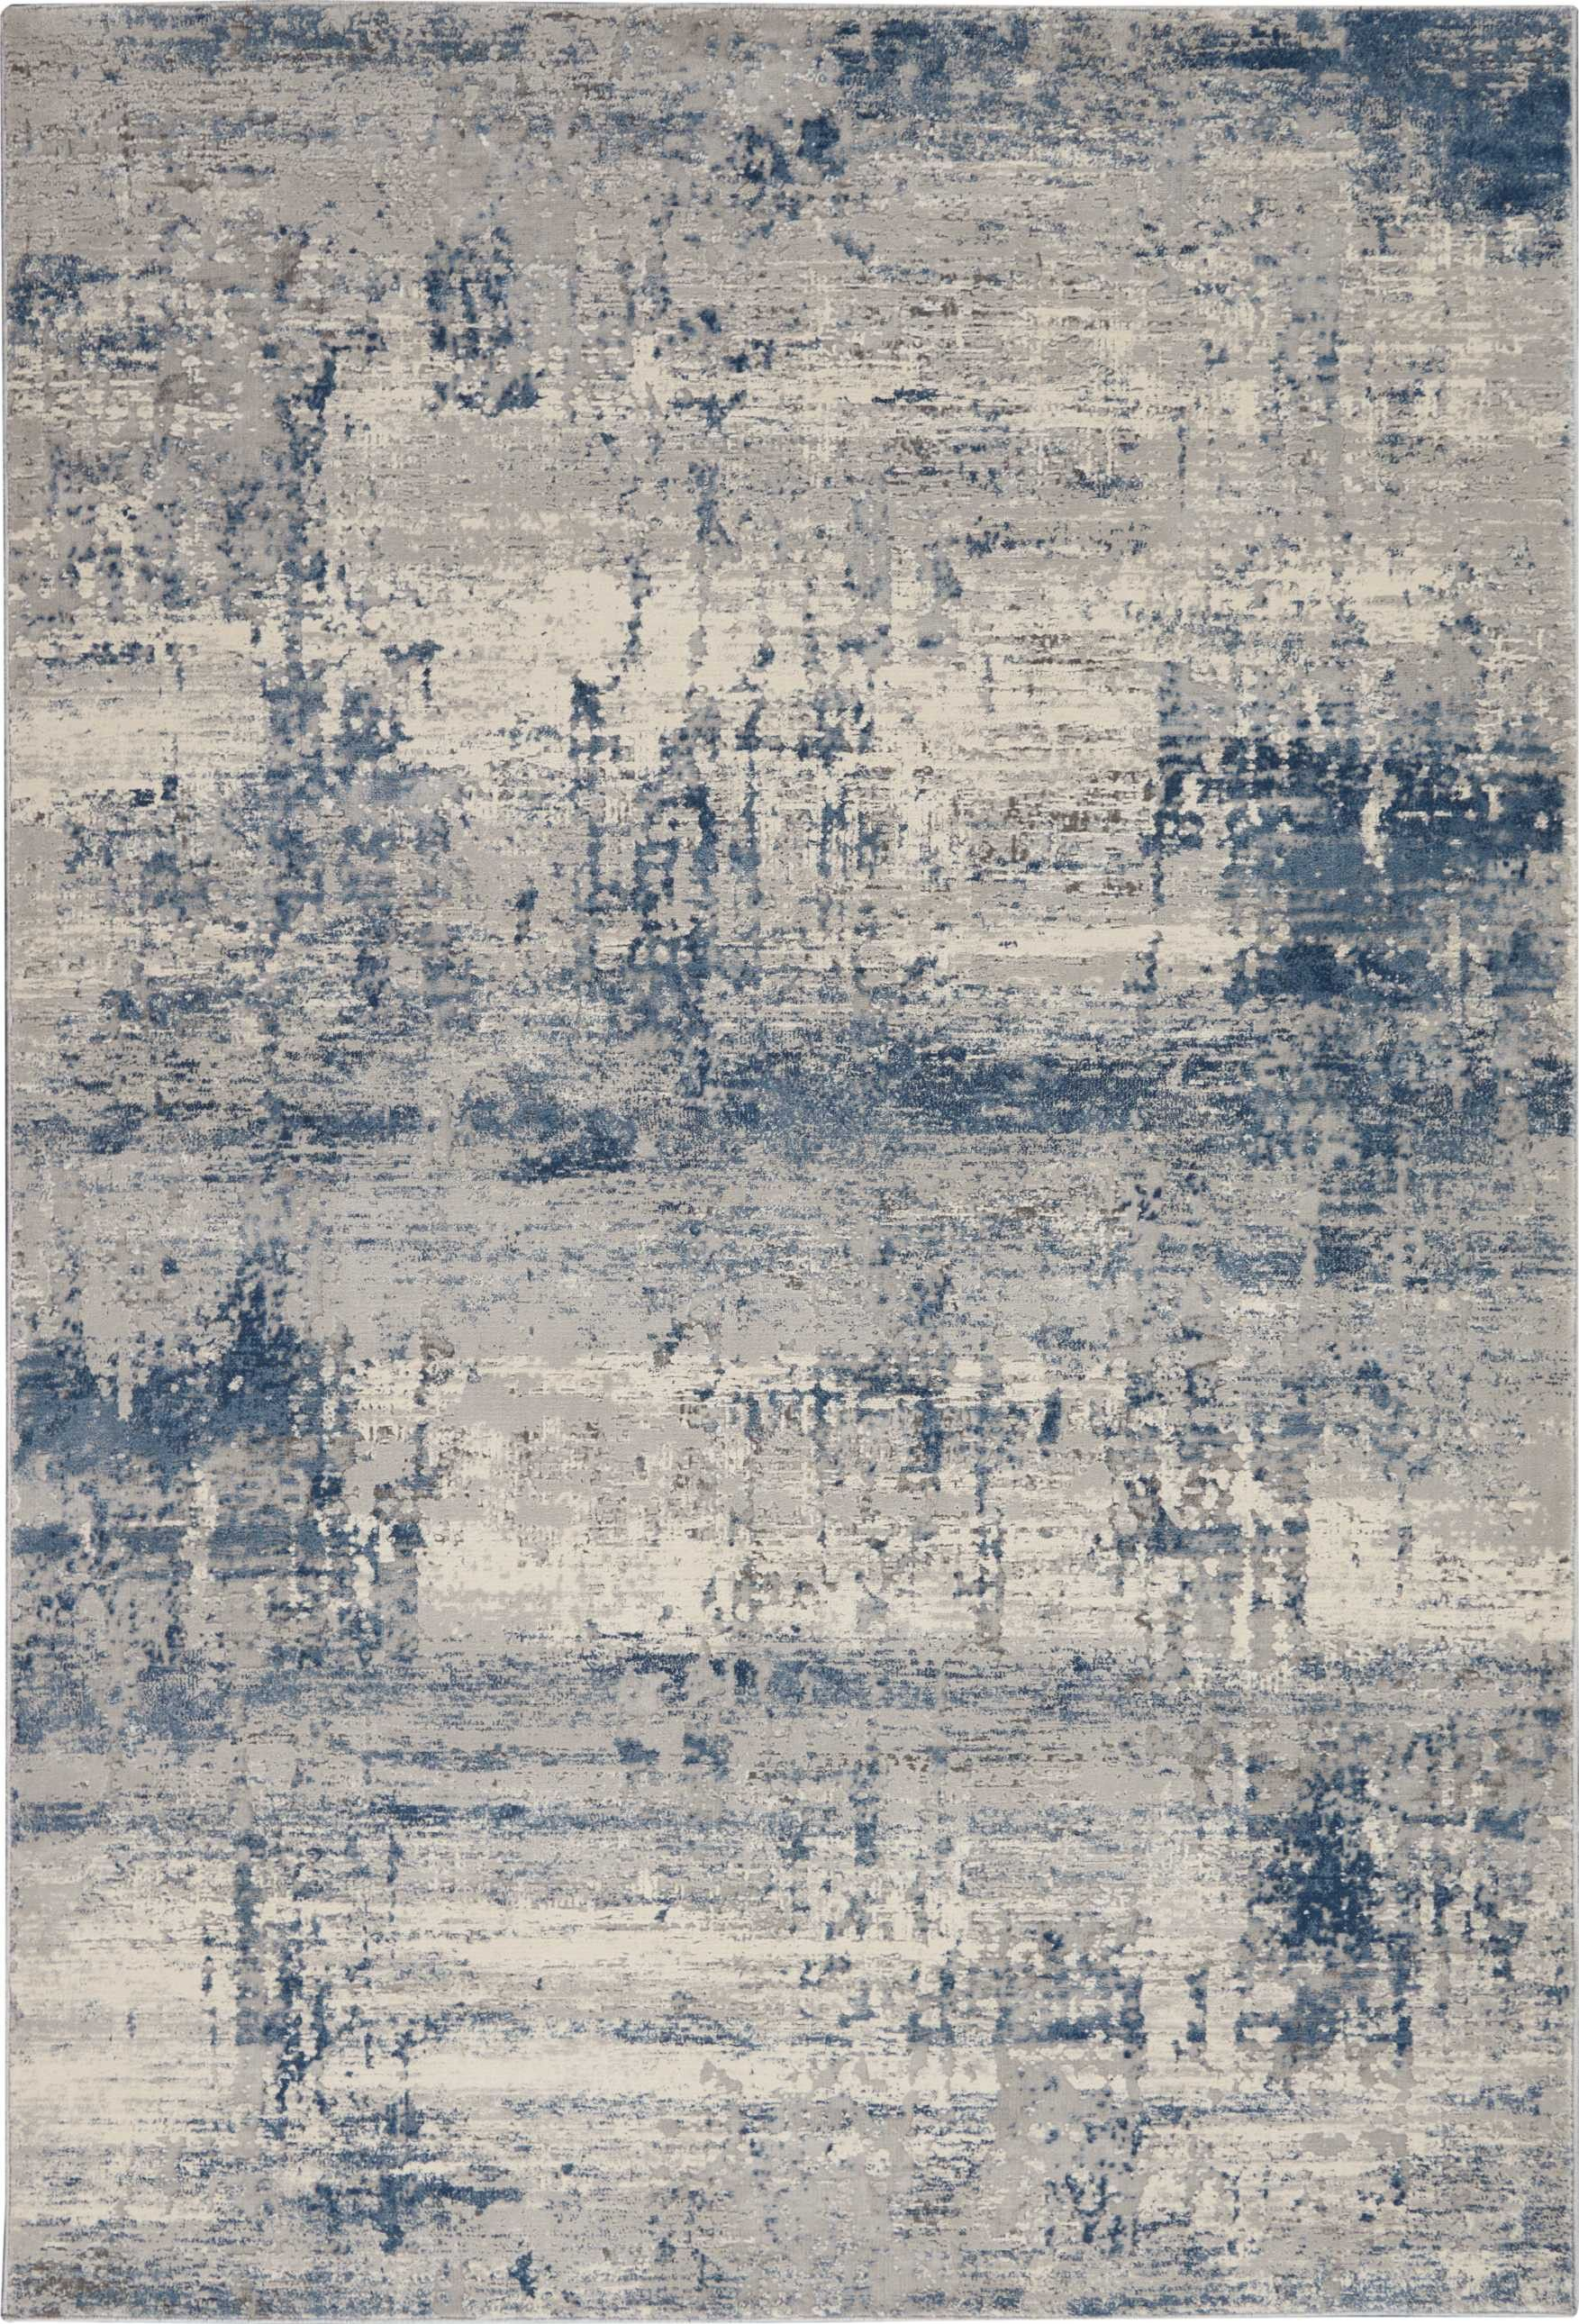 Rustic Textures Rus10 Ivory Blue Rustic Textures Area Rugs Products Textured Carpet Modern Carpets Design Blue Area Rugs